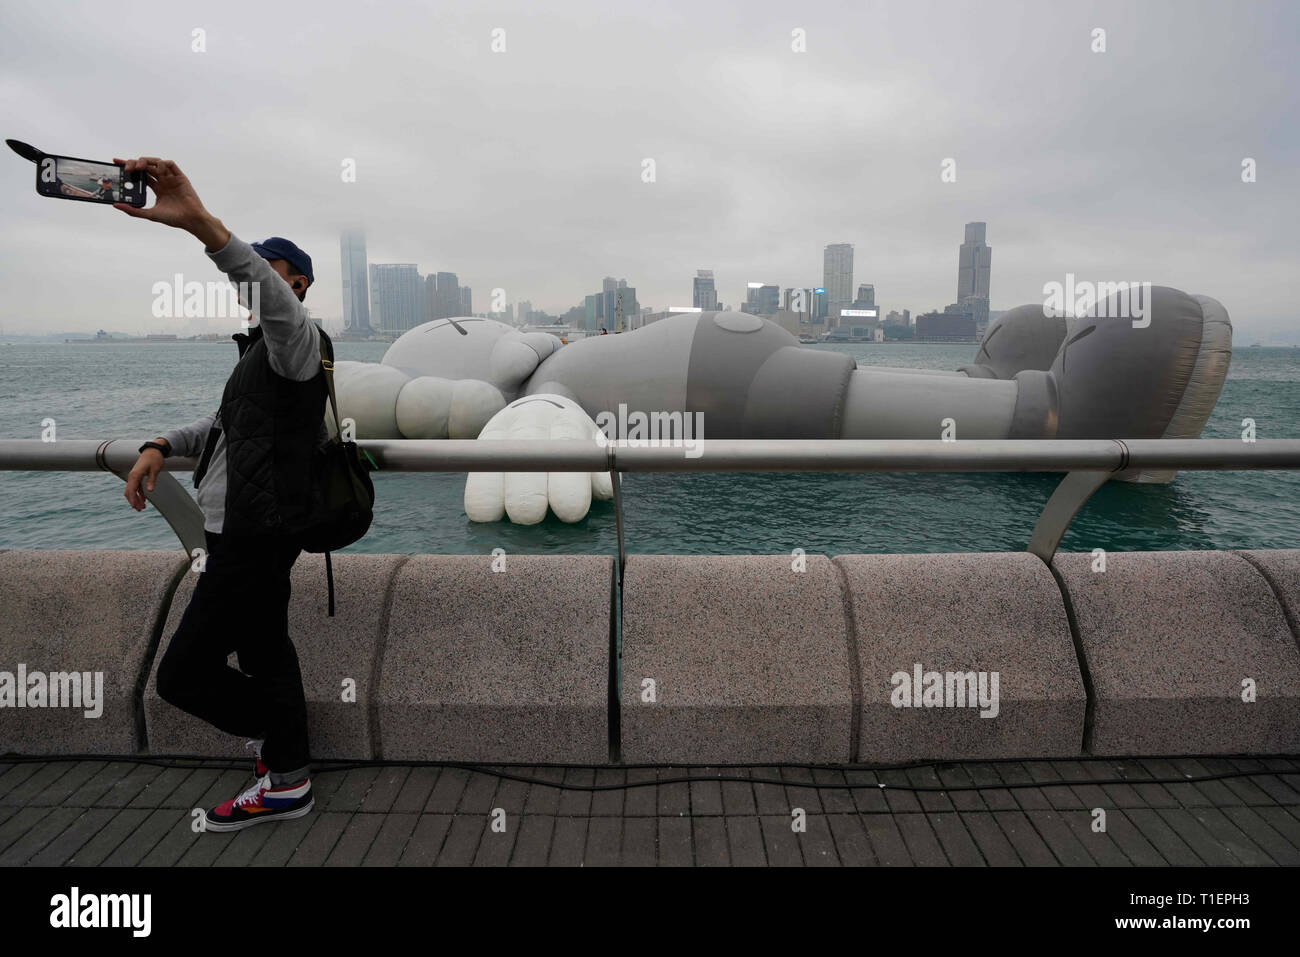 Hong Kong, China. 26th Mar, 2019. A visitor takes a photo of himself with the KAWS:HOLIDAY installation on display in Hong Kong's Victoria Harbor. The KAWS:Holiday enlarged structure by American artist Brian Donnelly, also known as KAWS, will be on display until March 31, 2019. Credit: Christopher Jue/ZUMA Wire/Alamy Live News Stock Photo